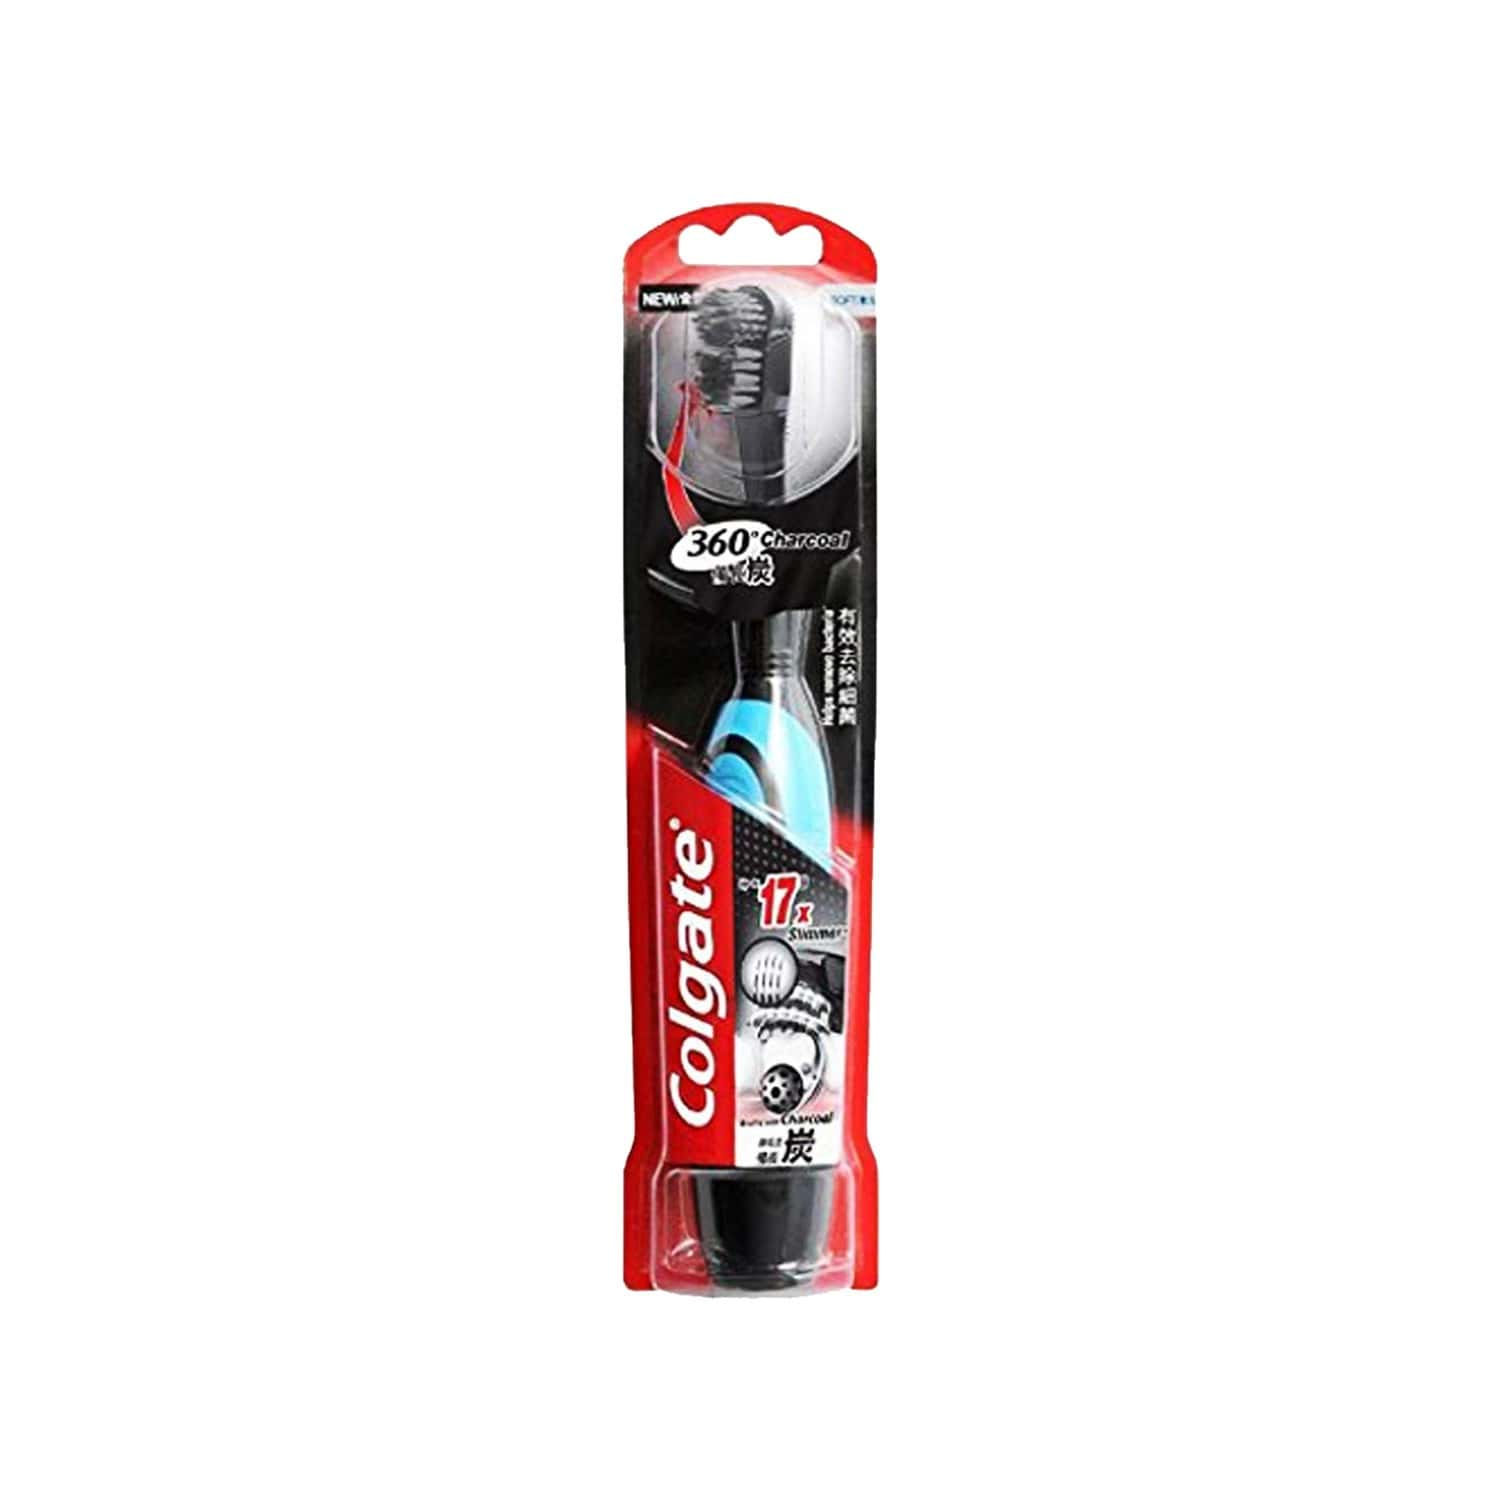 Colgate 360 Charcoal Battery Tb Toothbrush